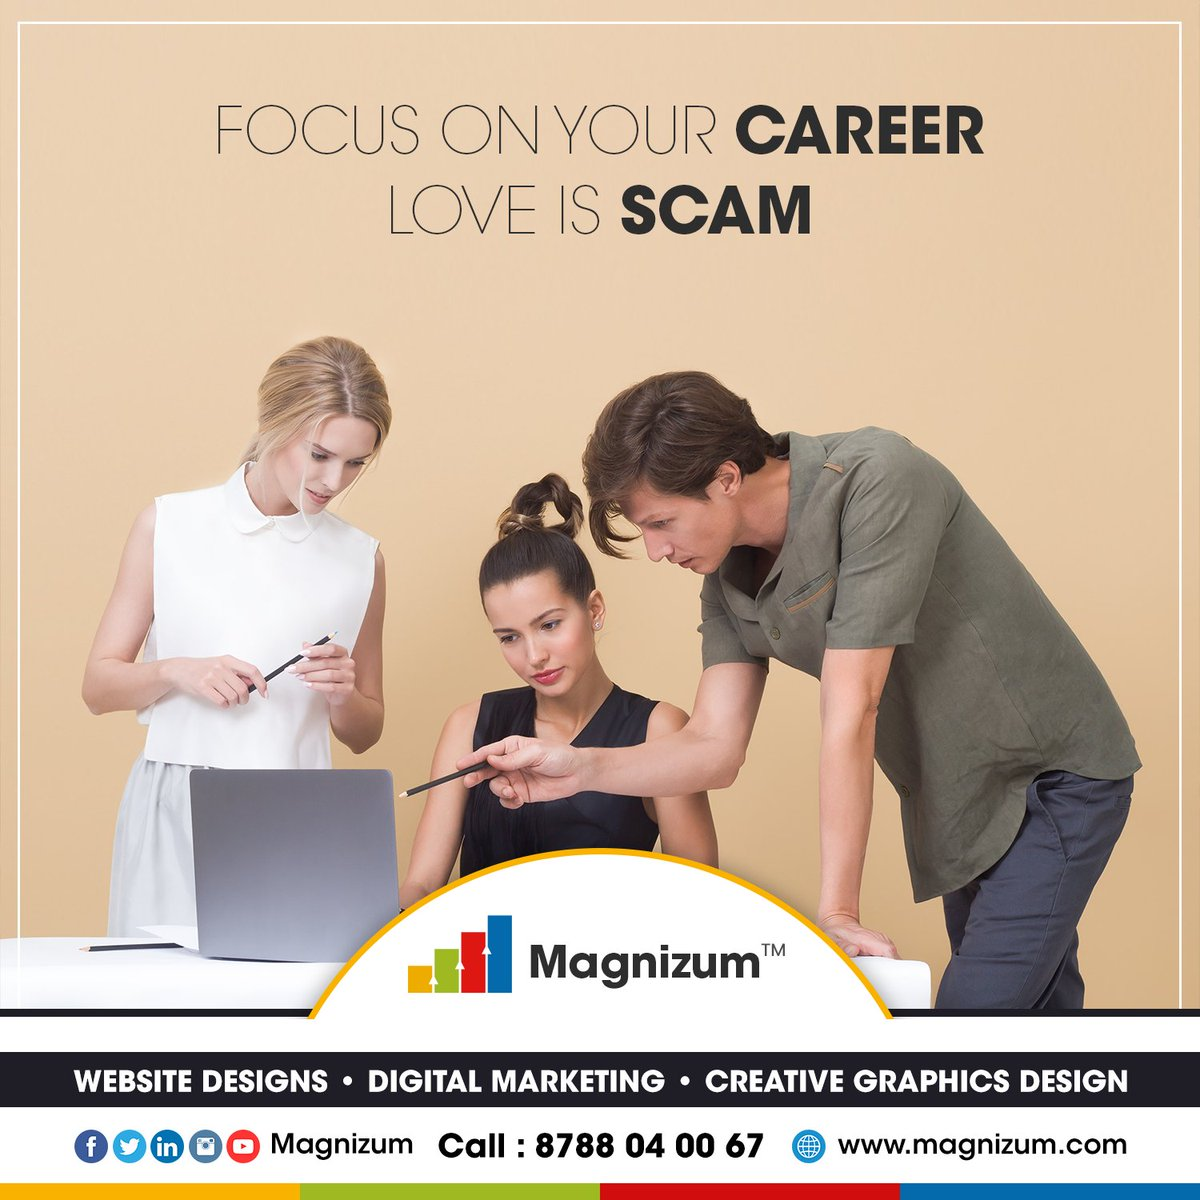 Follow Magnizum - @magnizum  #magnizum #digitalmarketing #marketing #socialmediamarketing #socialmedia #seo #business #onlinemarketing #marketingdigital #entrepreneur #advertising #contentmarketing #marketingtips #marketingstrategy #webdesign #smallbusinesspic.twitter.com/My9zbbYIqf